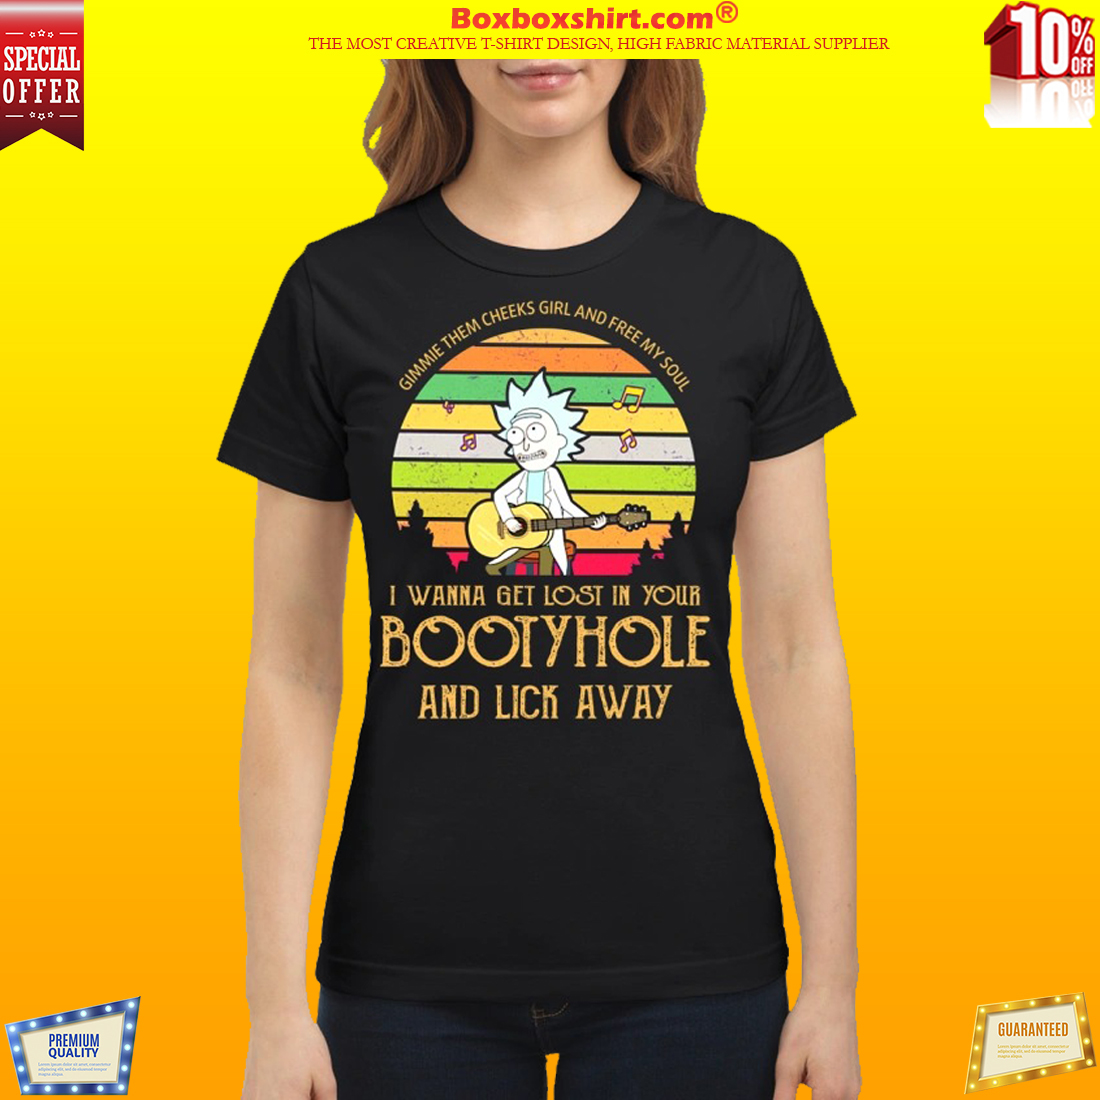 Gimme them cheeks girl and free my soul get lost in your bootyhole classic shirt